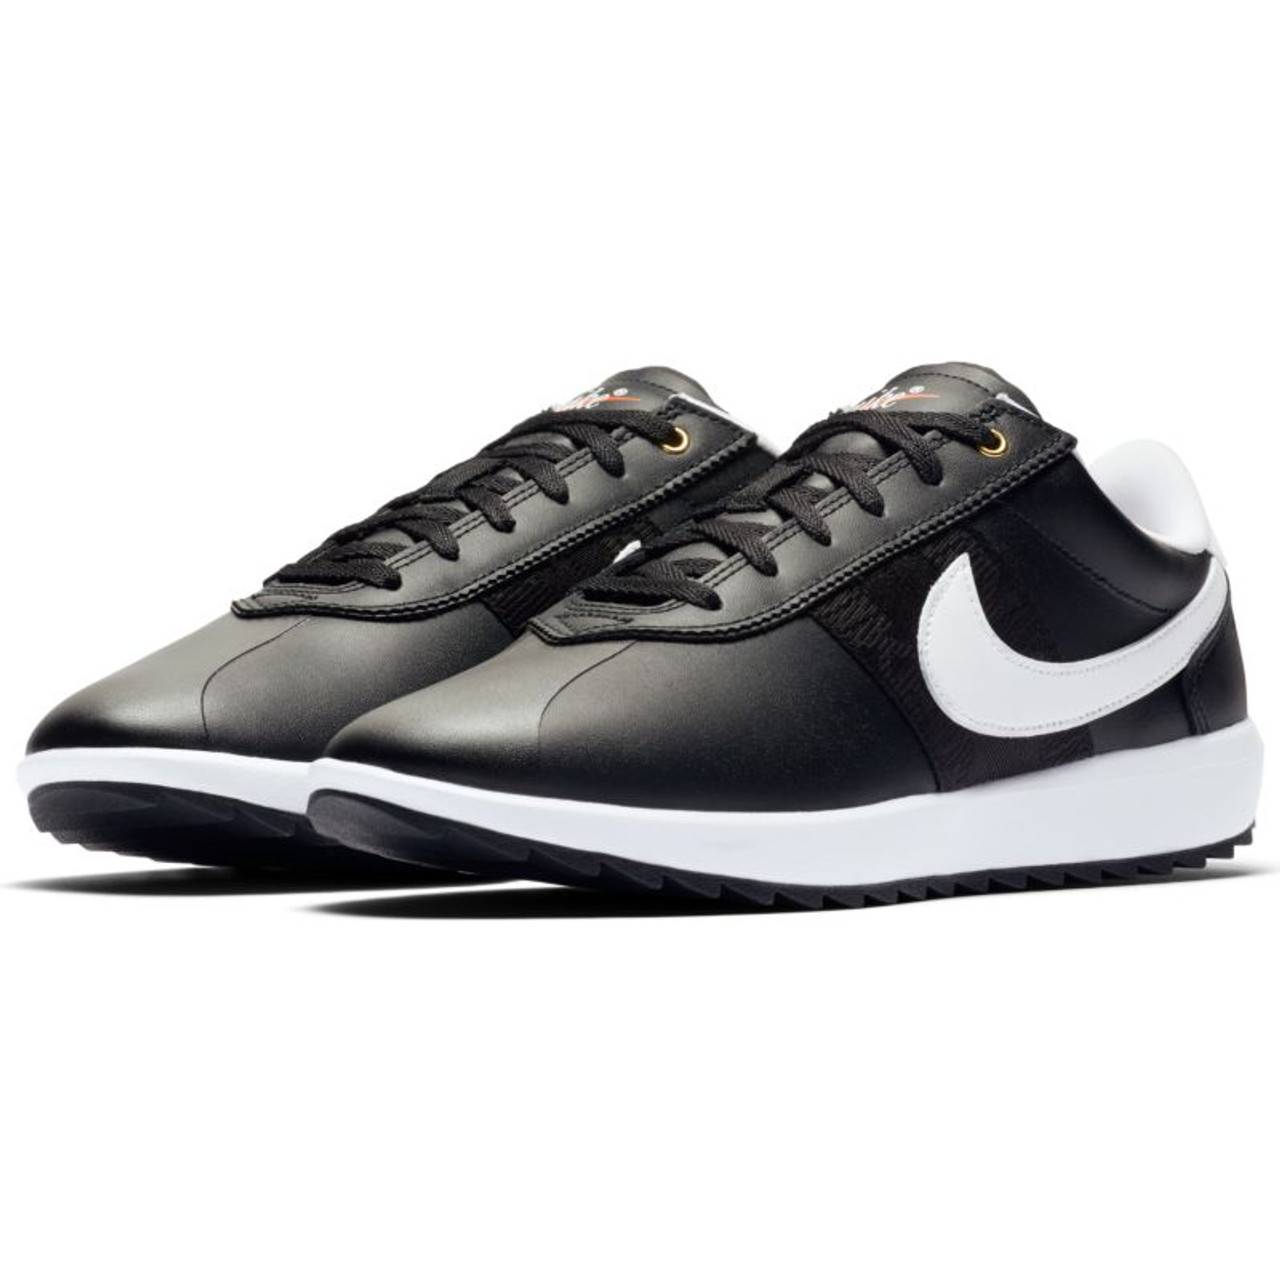 Nike Womens Cortez G Golf Shoes - Amethyst Tint / White Nike Womens Cortez G Golf Shoes - Black / White / Metallic Gold